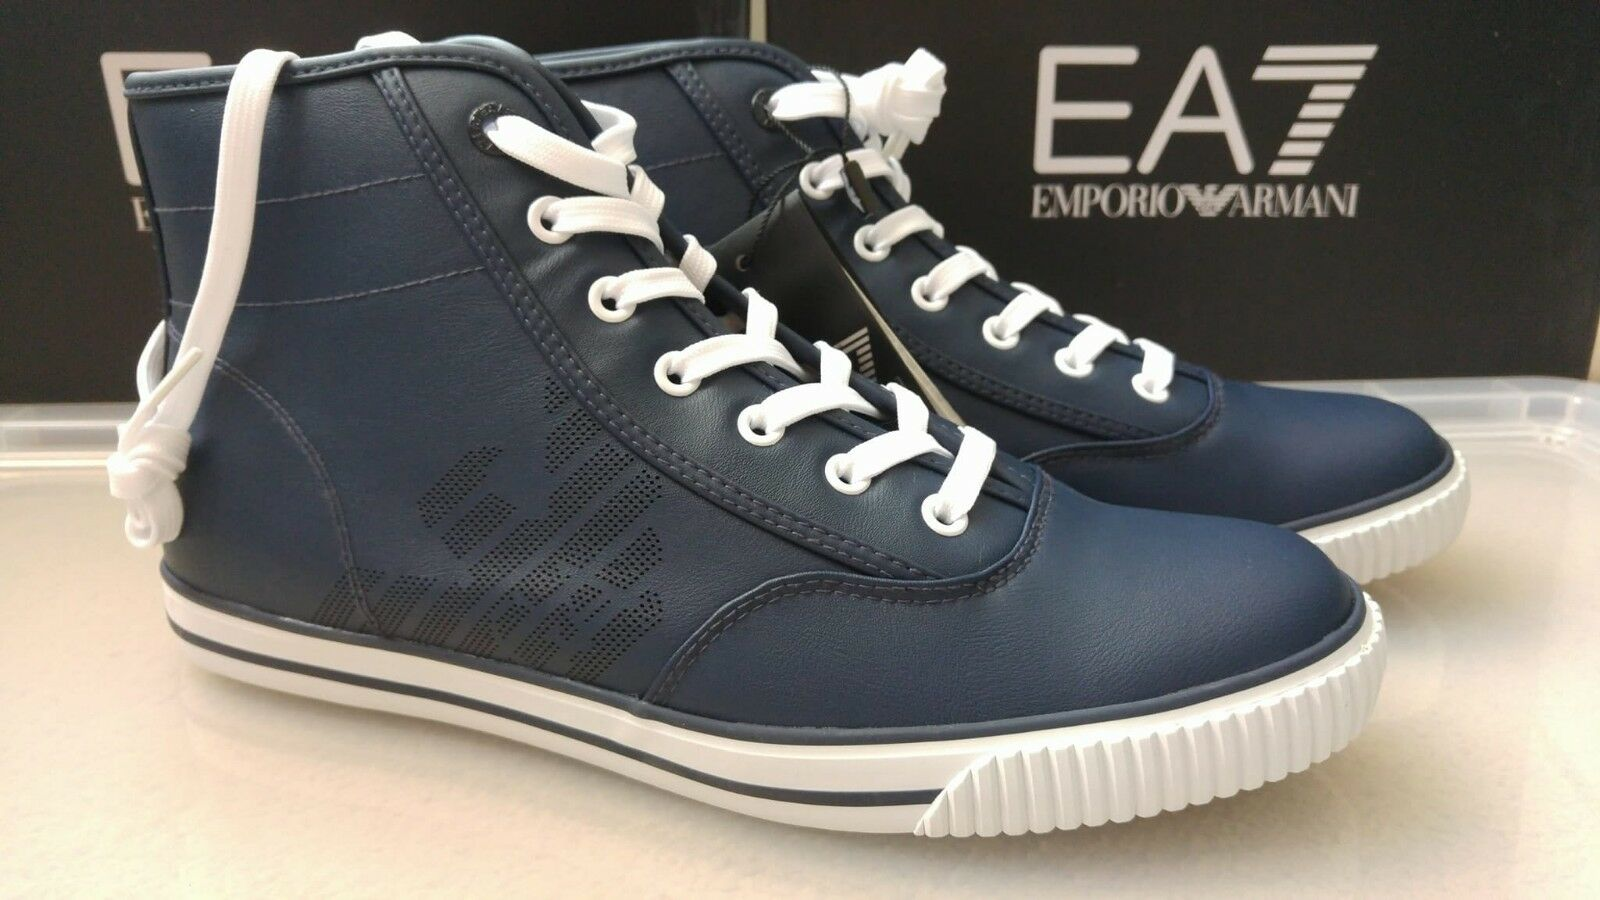 Emporio Armani EA7 herren Cult Vintage high-top trainers 9.5UK